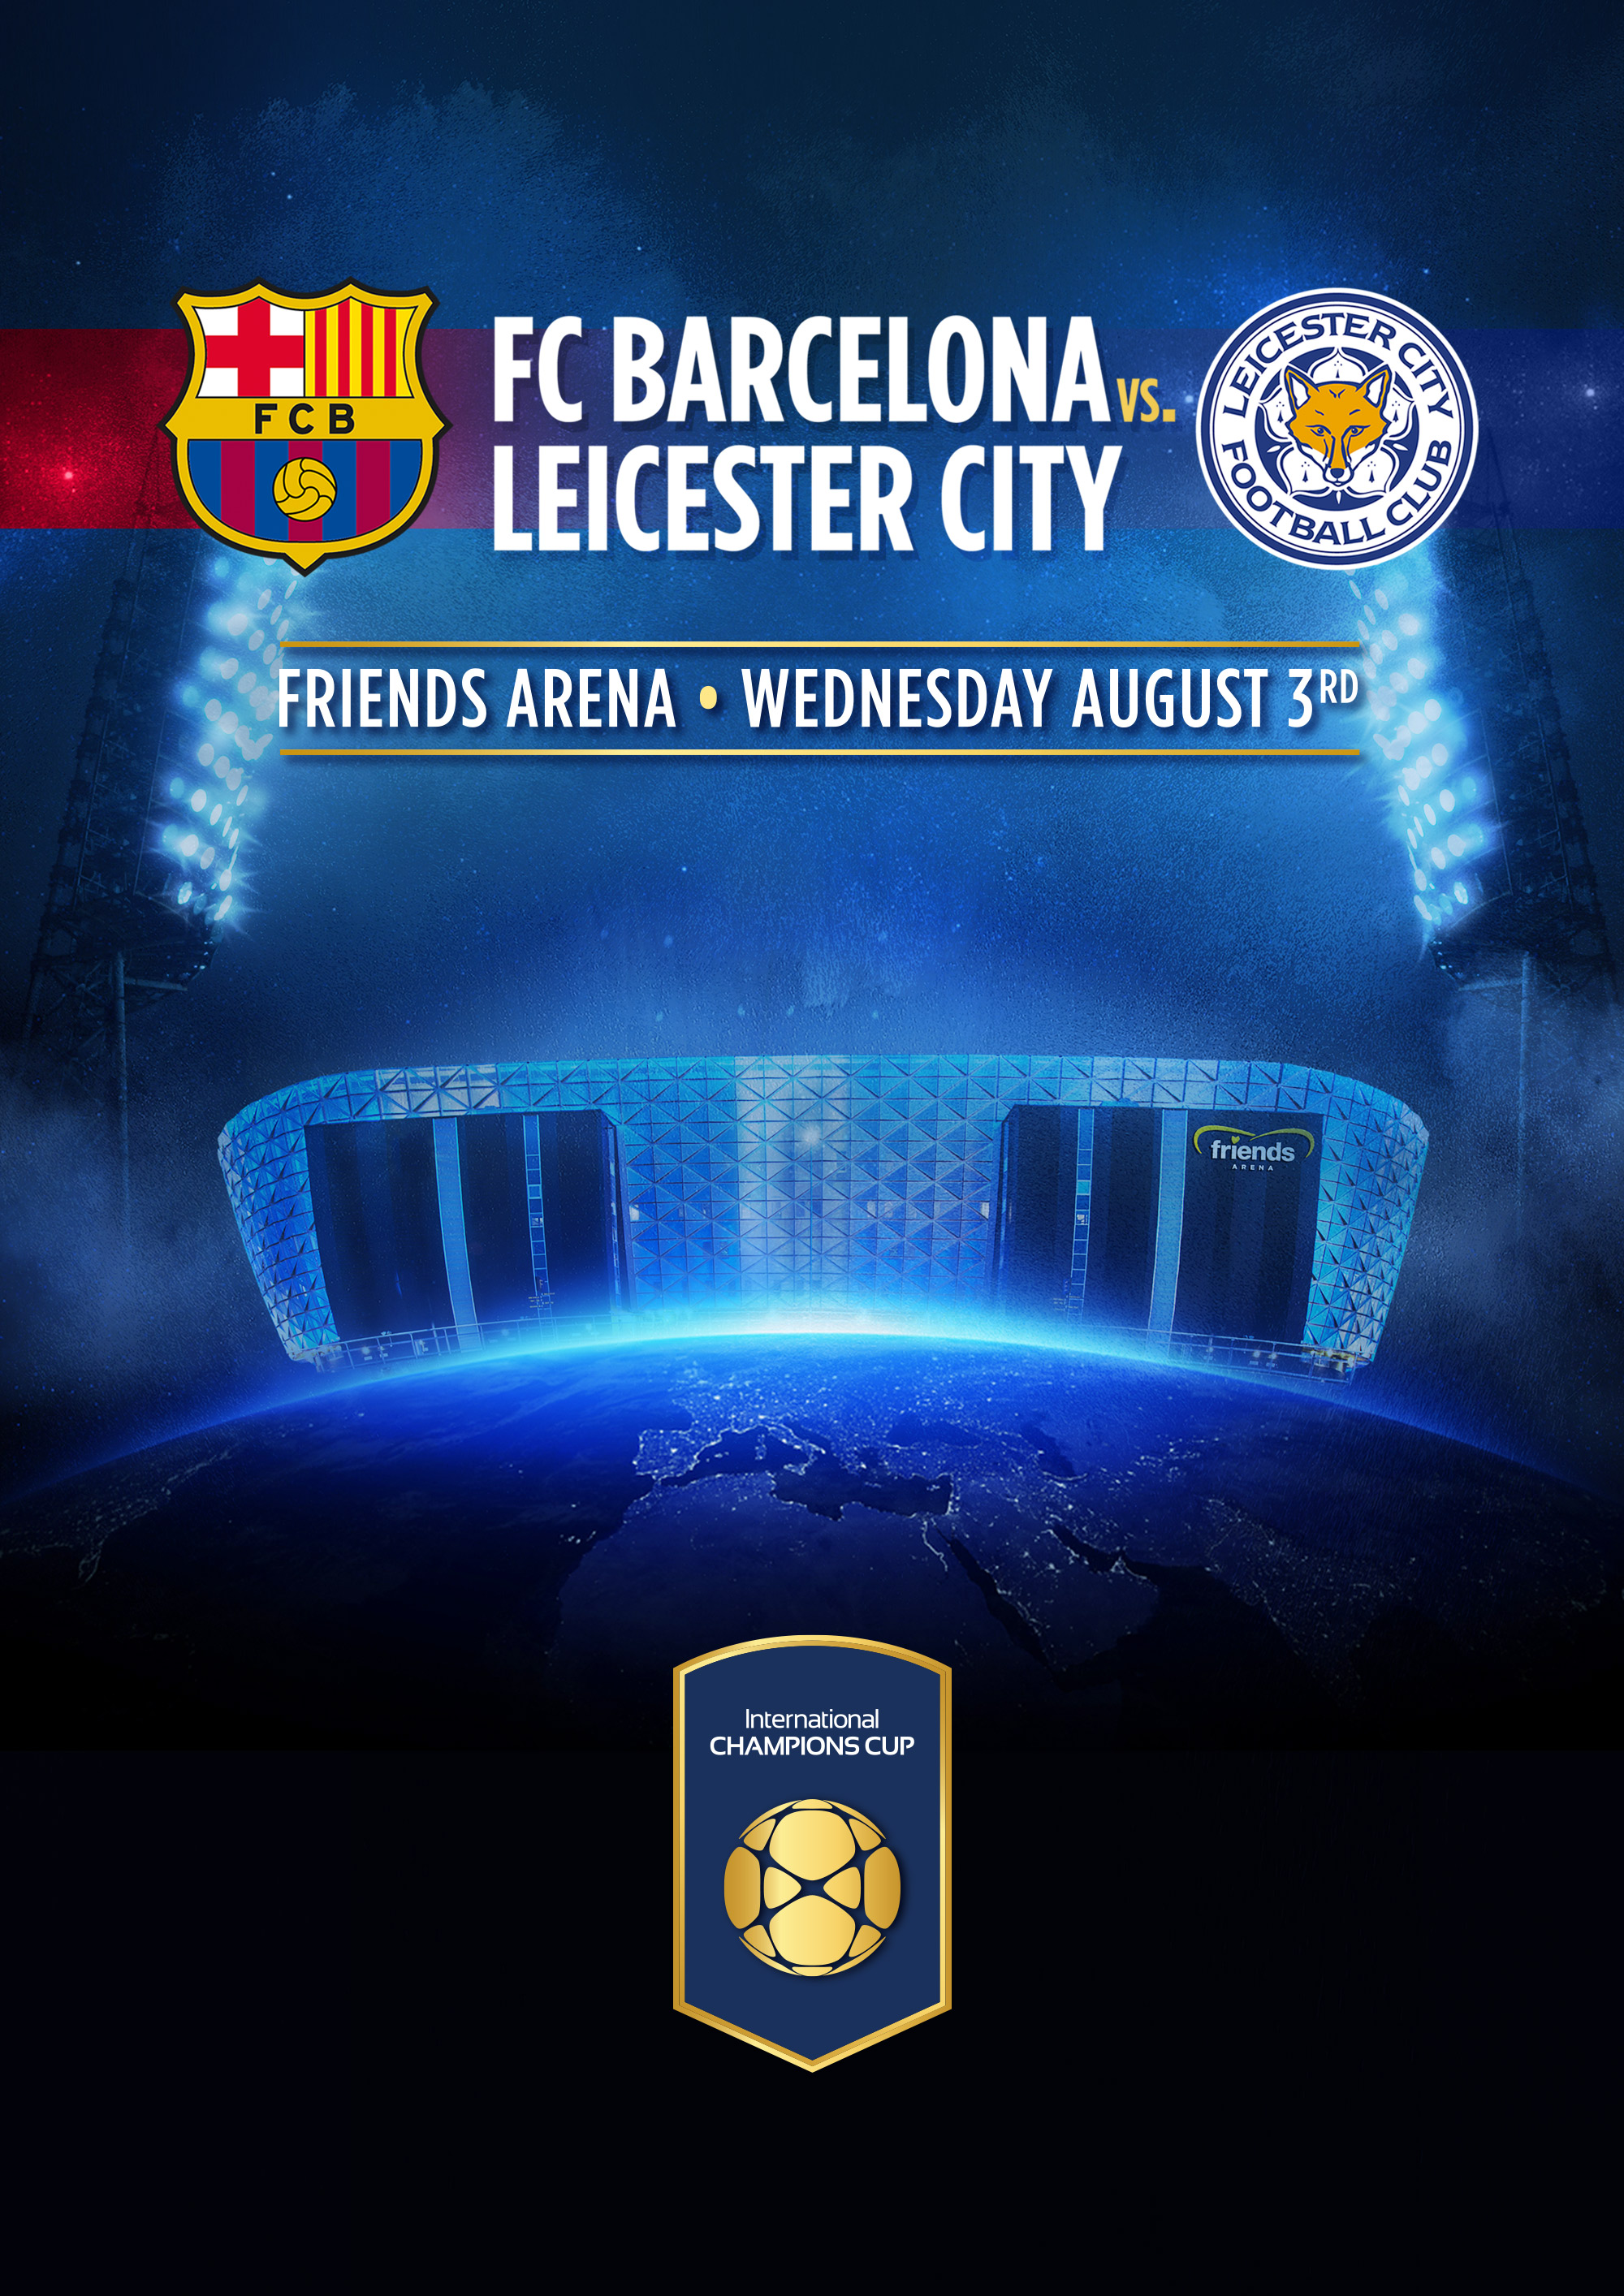 FC Barcelona vs. Leicester City